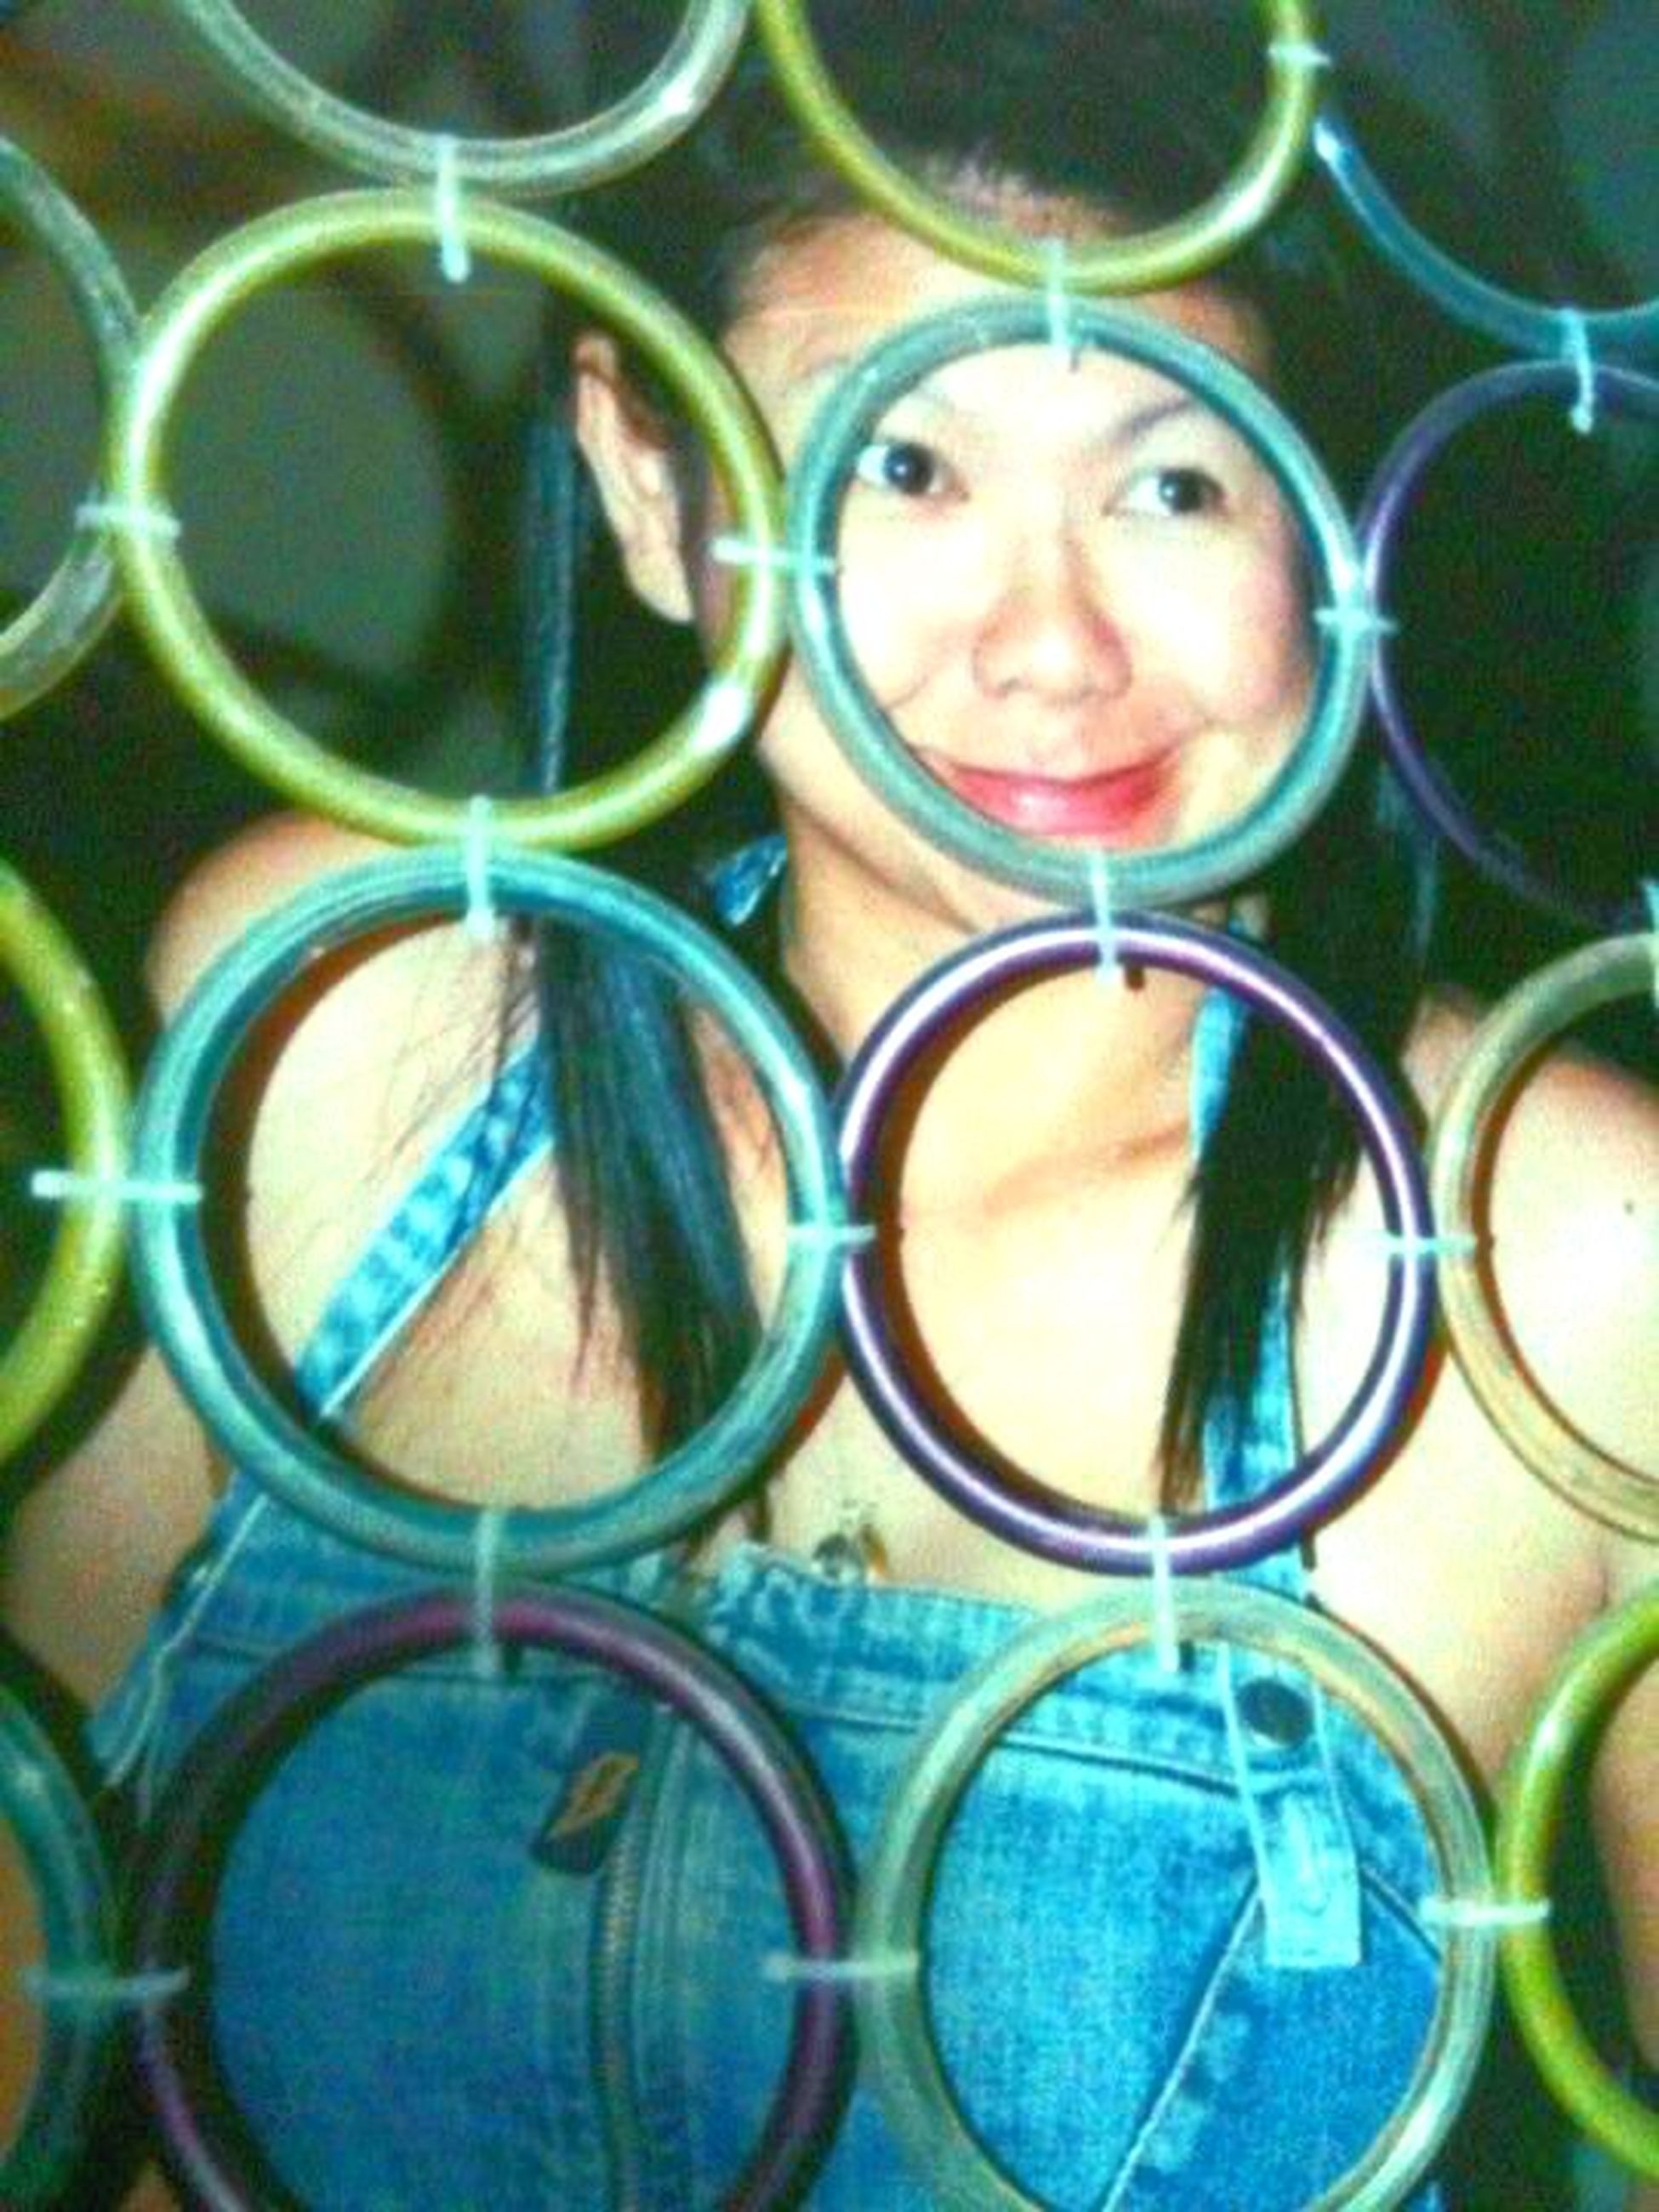 portrait, looking at camera, full frame, circle, backgrounds, pattern, protection, close-up, front view, reflection, outdoors, geometric shape, multi colored, day, blue, safety, childhood, chainlink fence